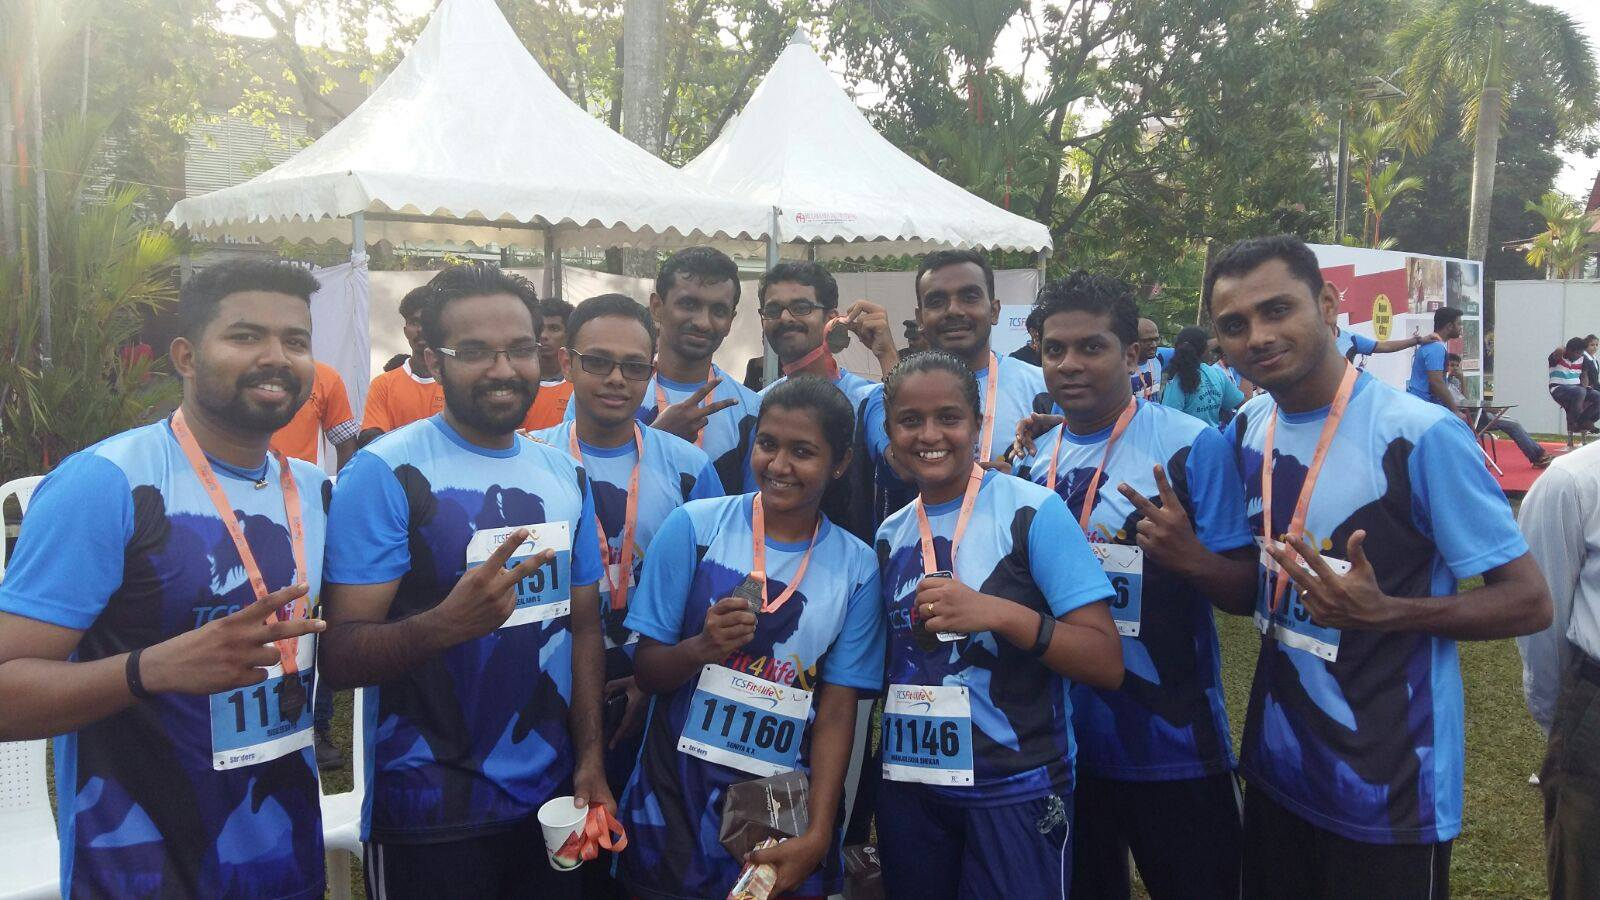 RapidValue at TCS Run